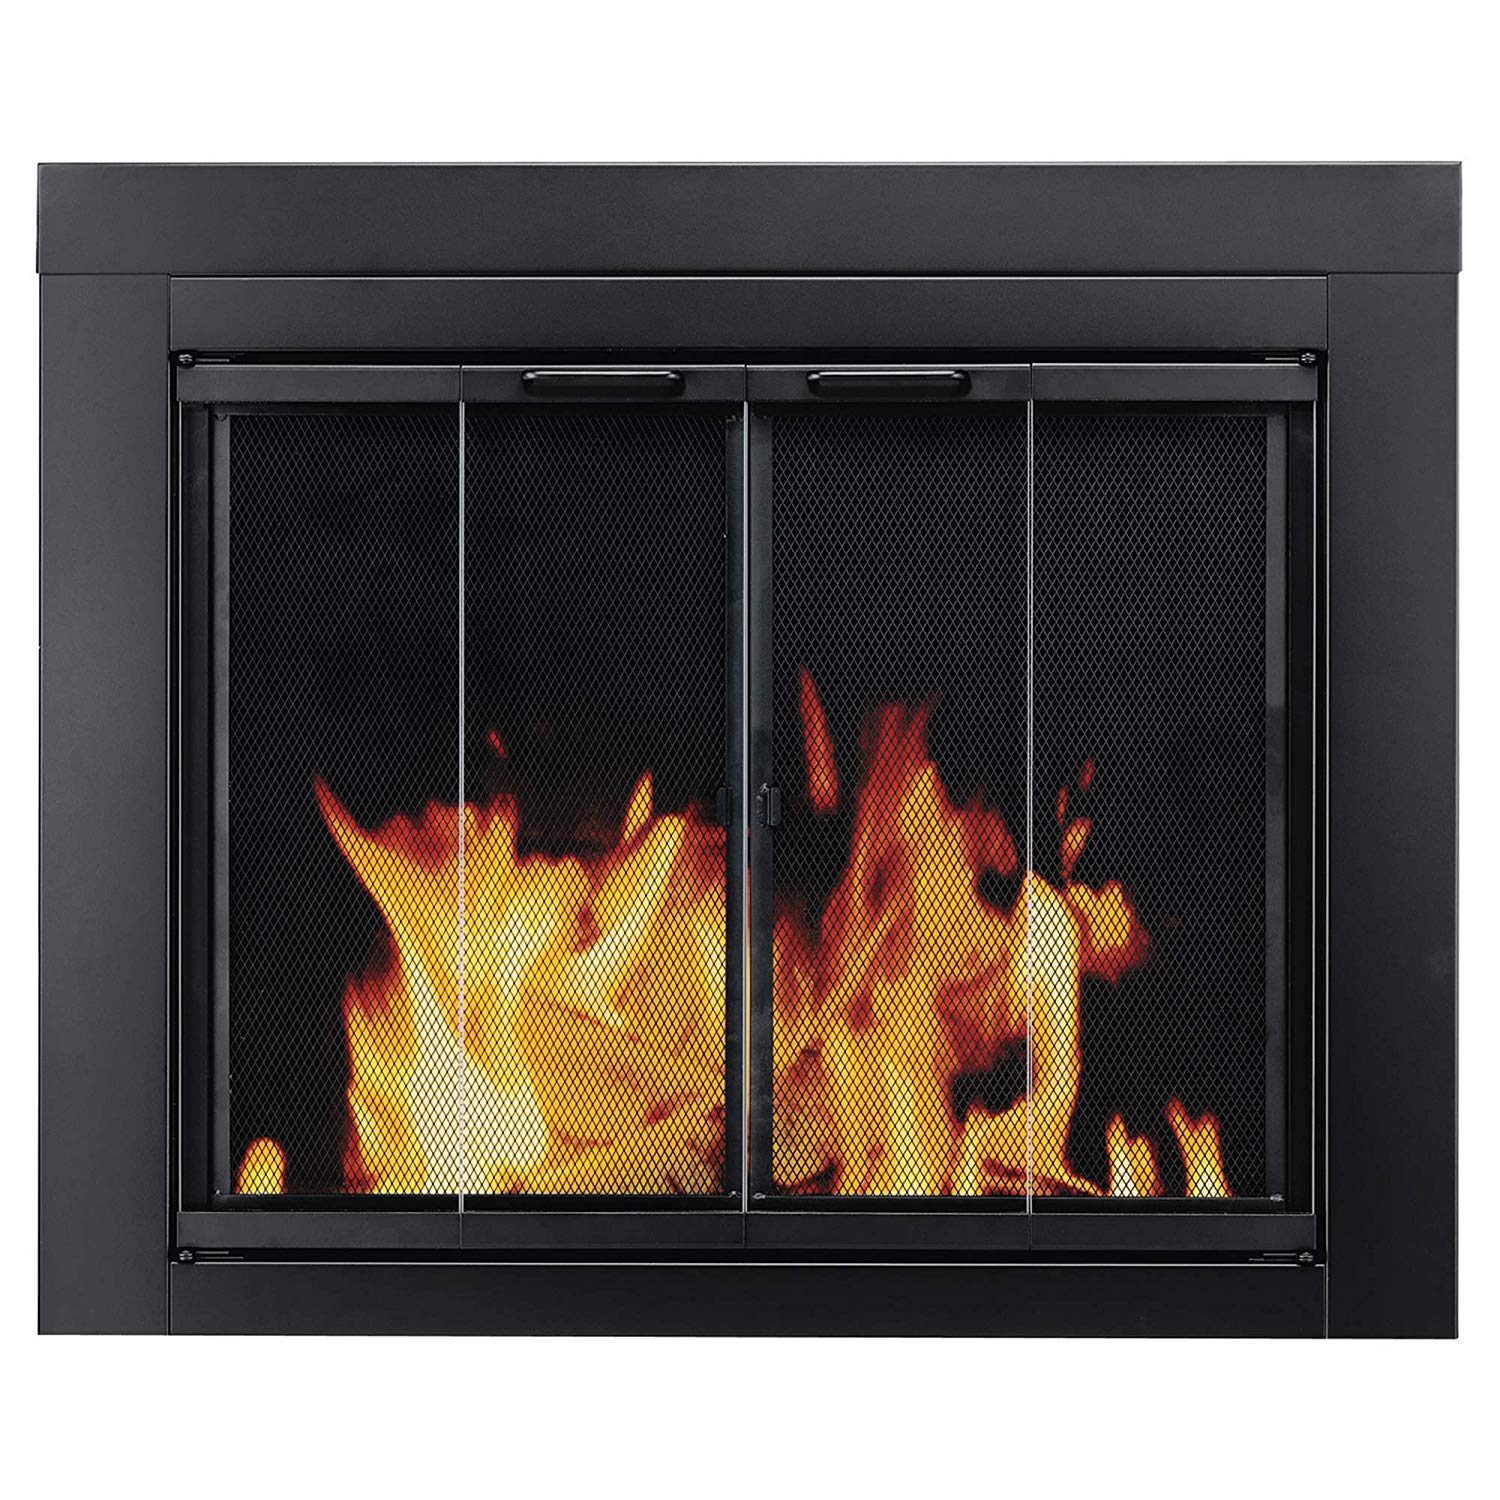 Amazon Fireplace Best Of Pleasant Hearth at 1000 ascot Fireplace Glass Door Black Small